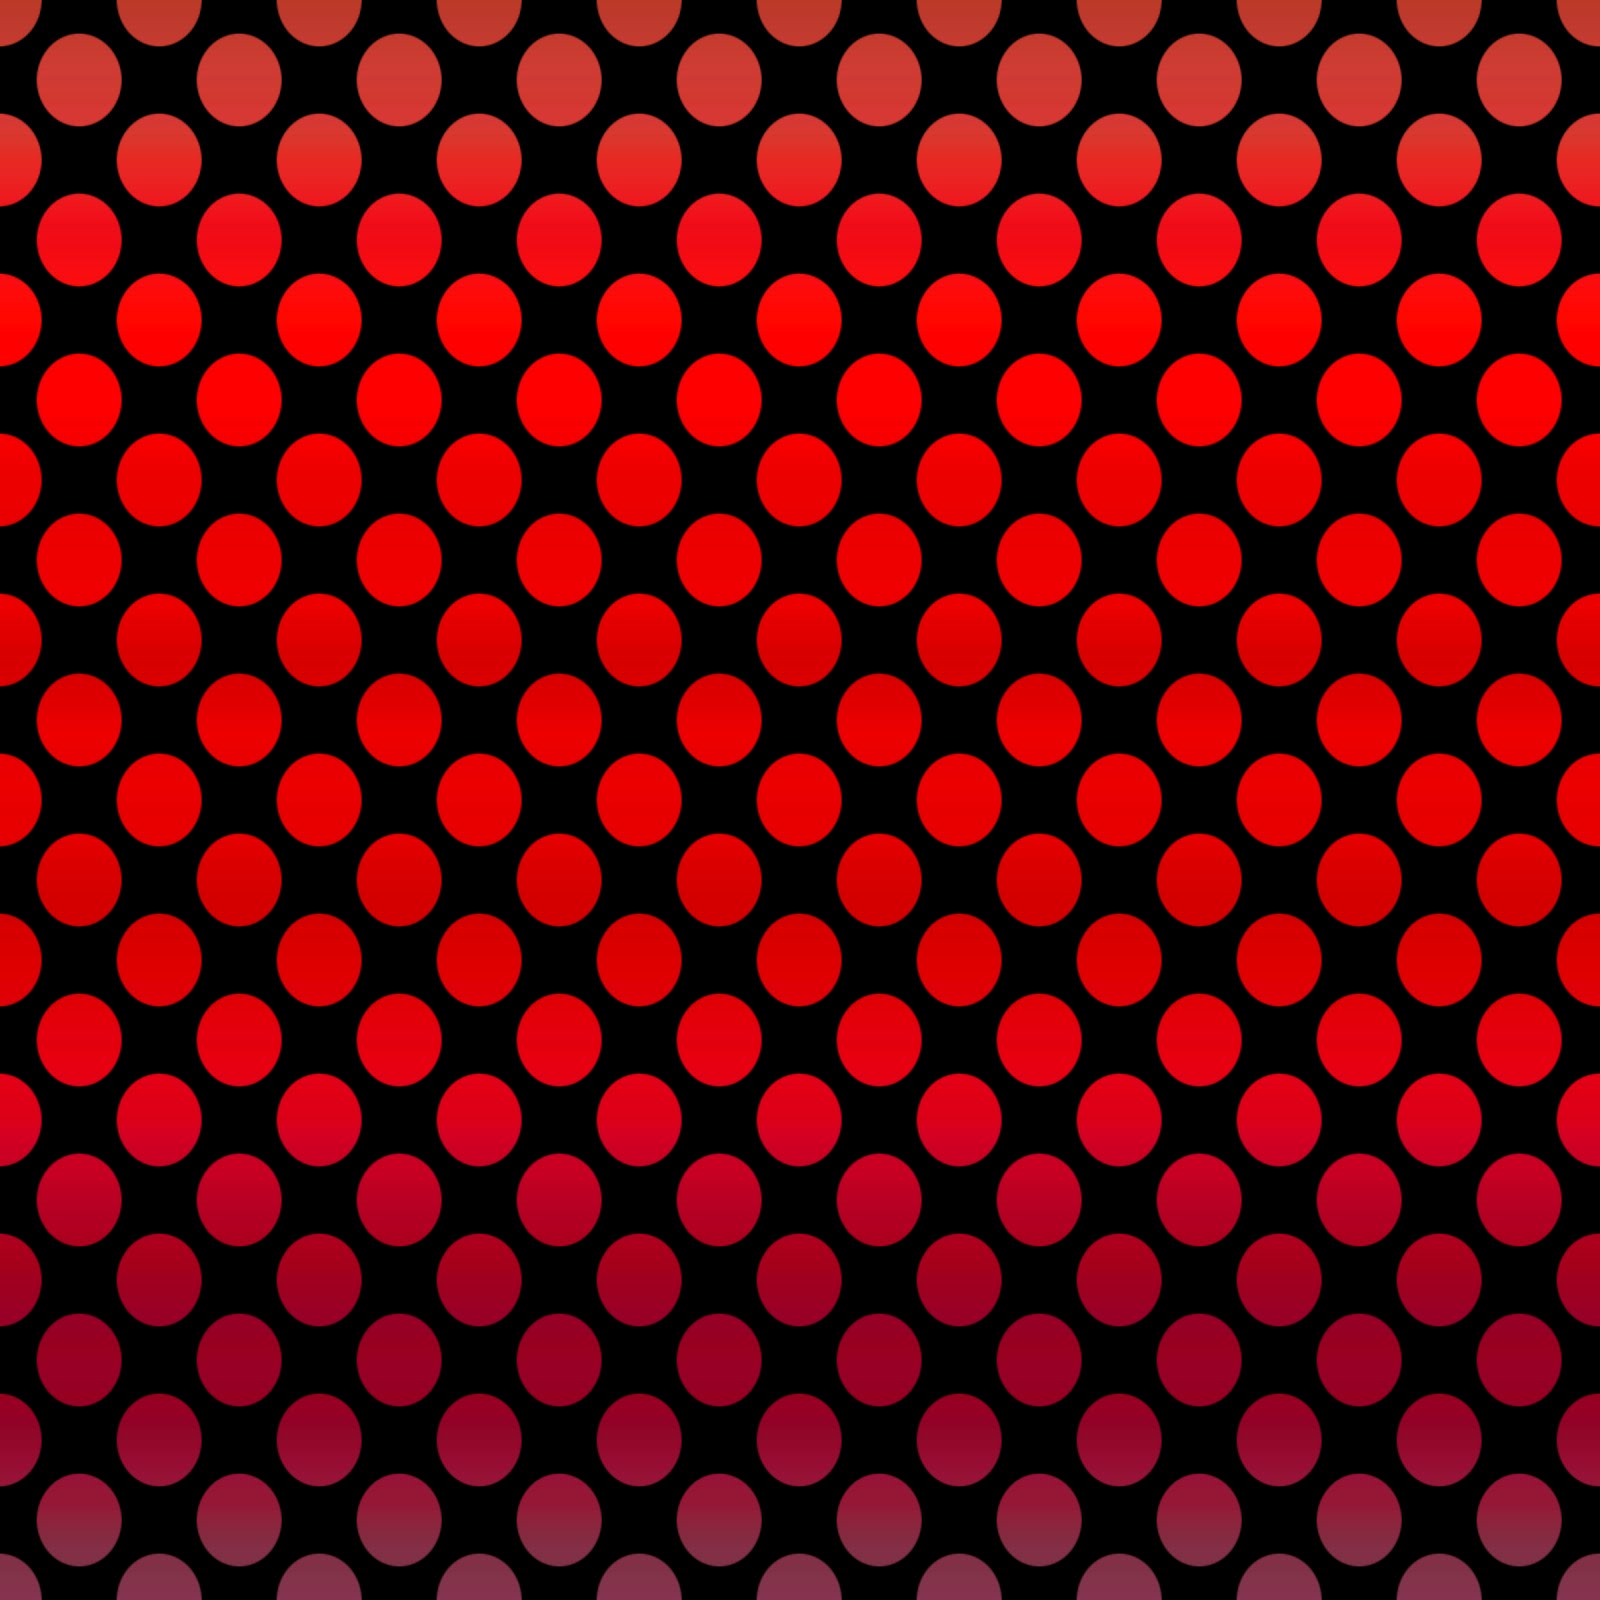 Download free Polka Dots Template - PPT Backgrounds